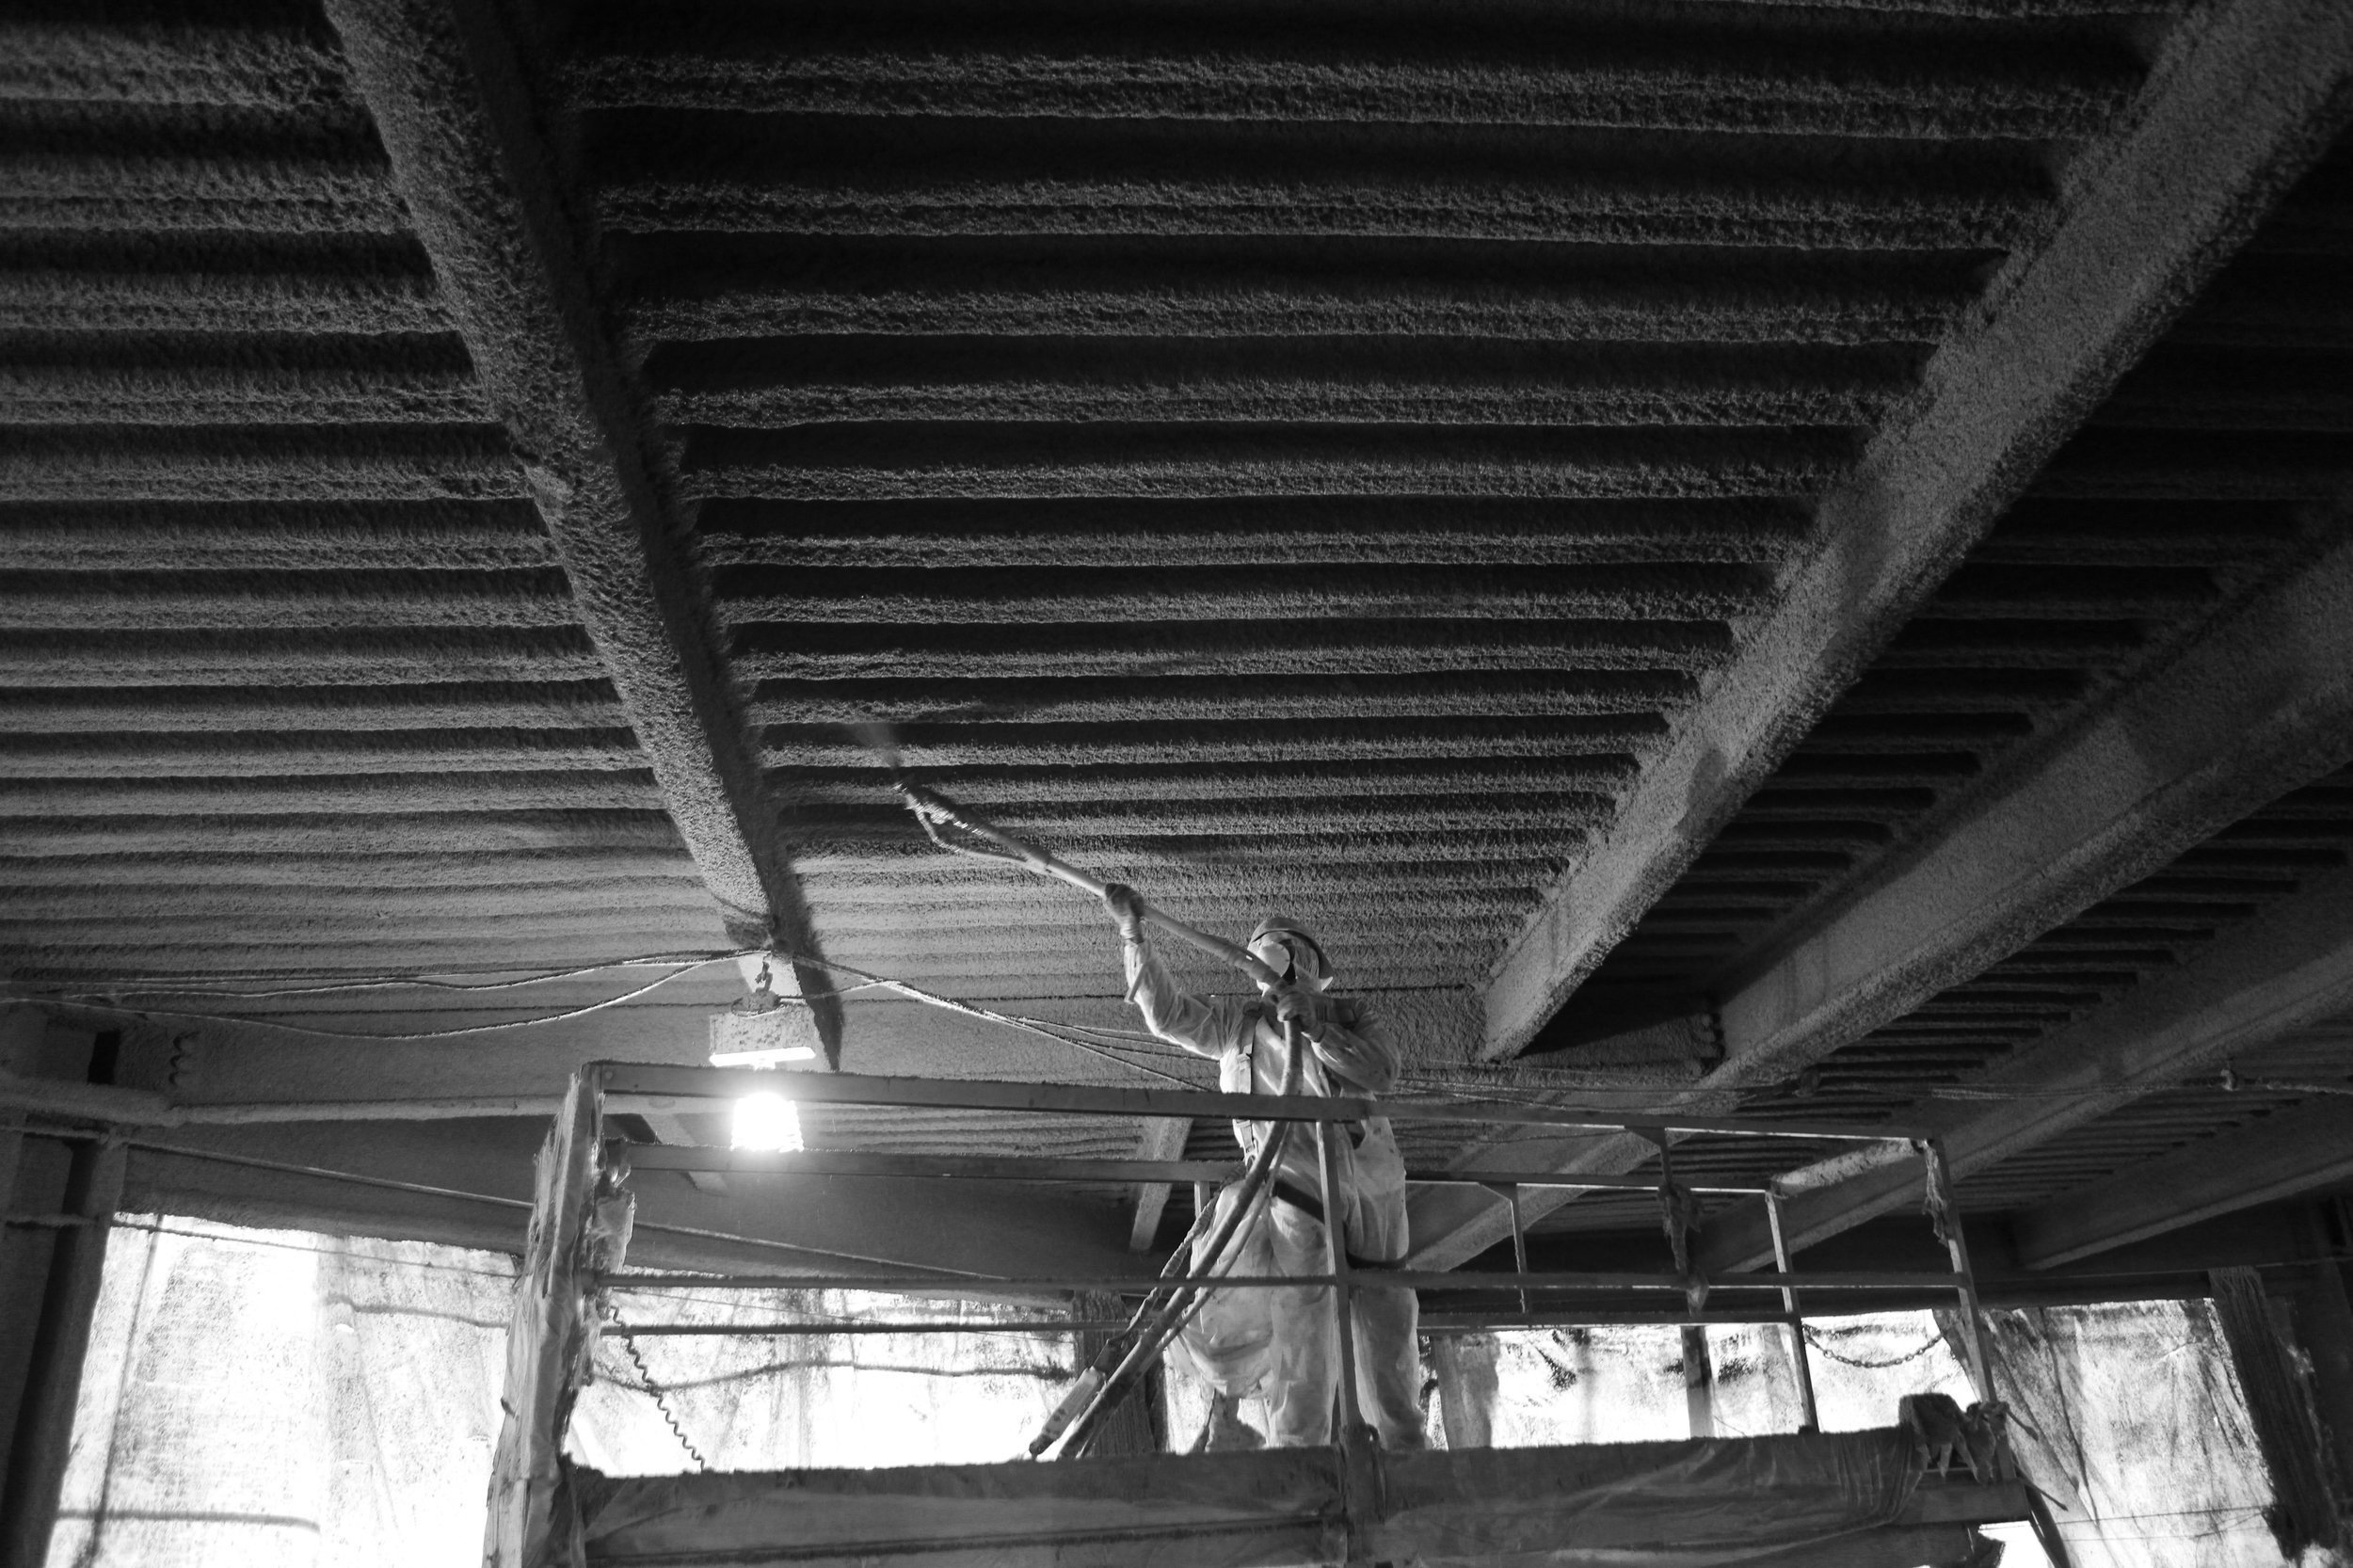 SPRAY ON FIREPROOFING - A passive fire protection measure; refers to the act of making structures resistant to fire. Applying a UL listed fireproofing system gives steel buildings the ability to maintain their structural integrity in a fire, ranging anywhere from 1 to 4 hours - giving the occupants valuable time to evacuate.